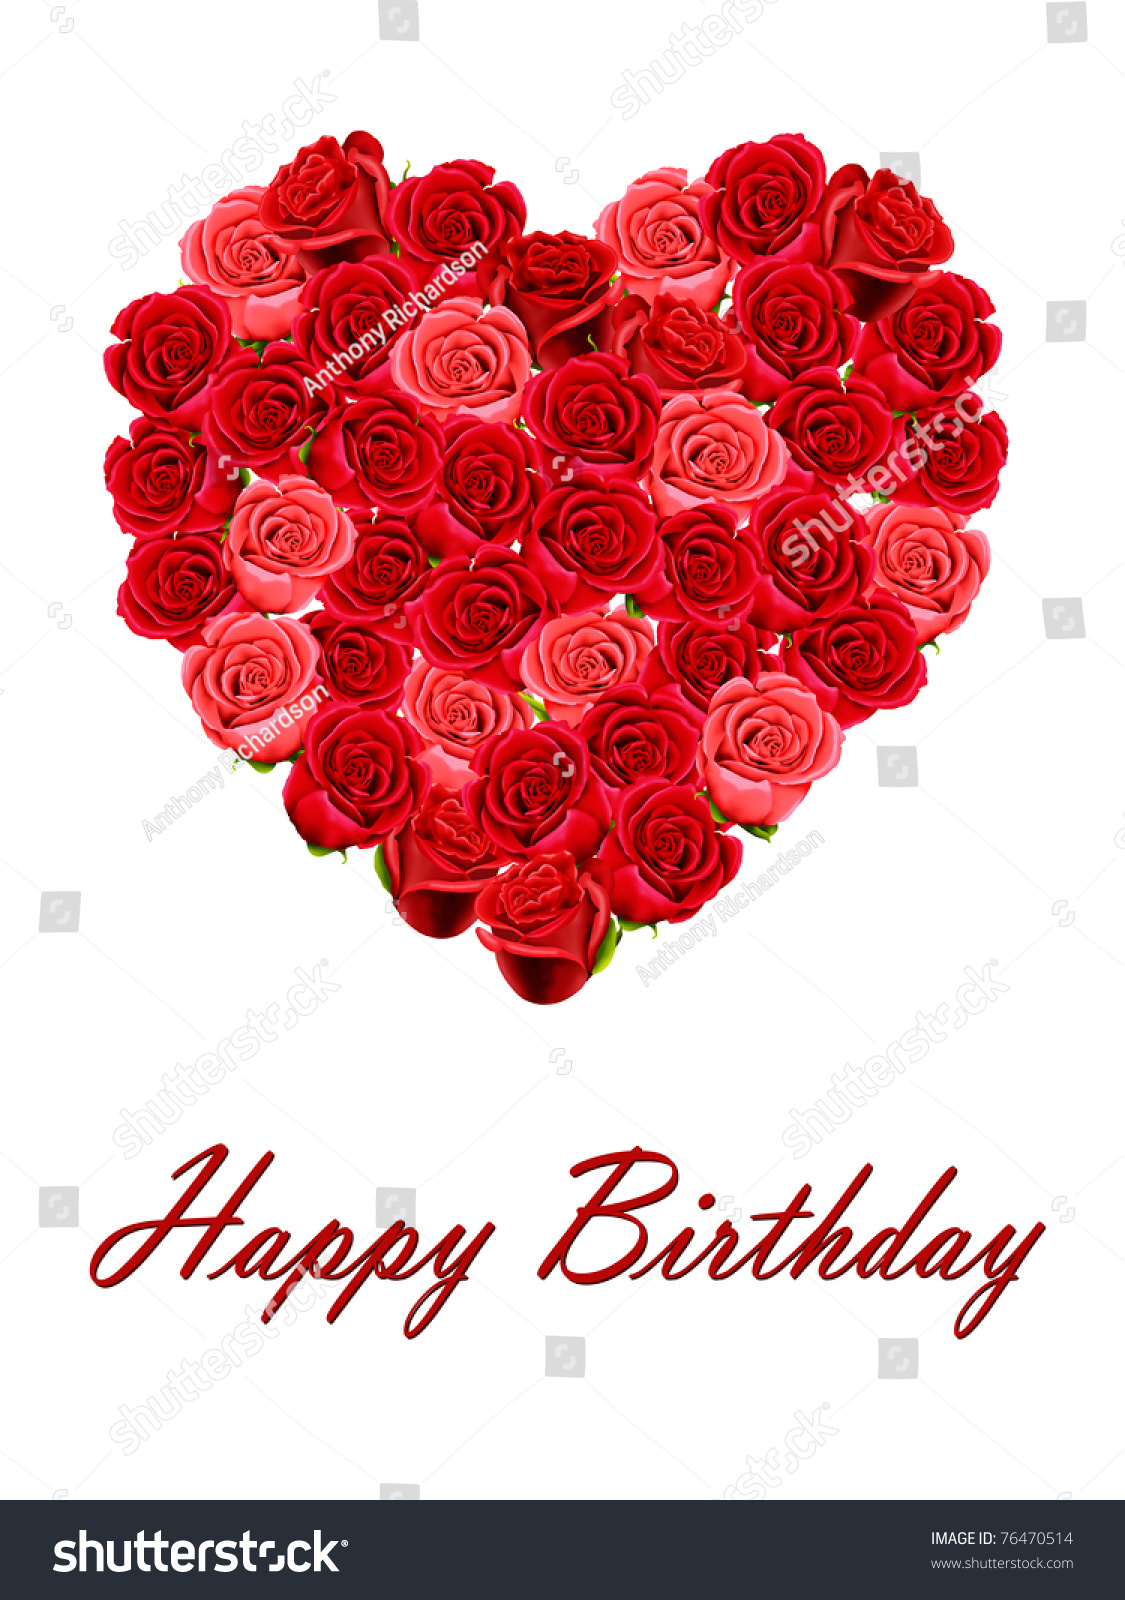 Happy Birthday With A Heart Of Roses Isolated On White Background